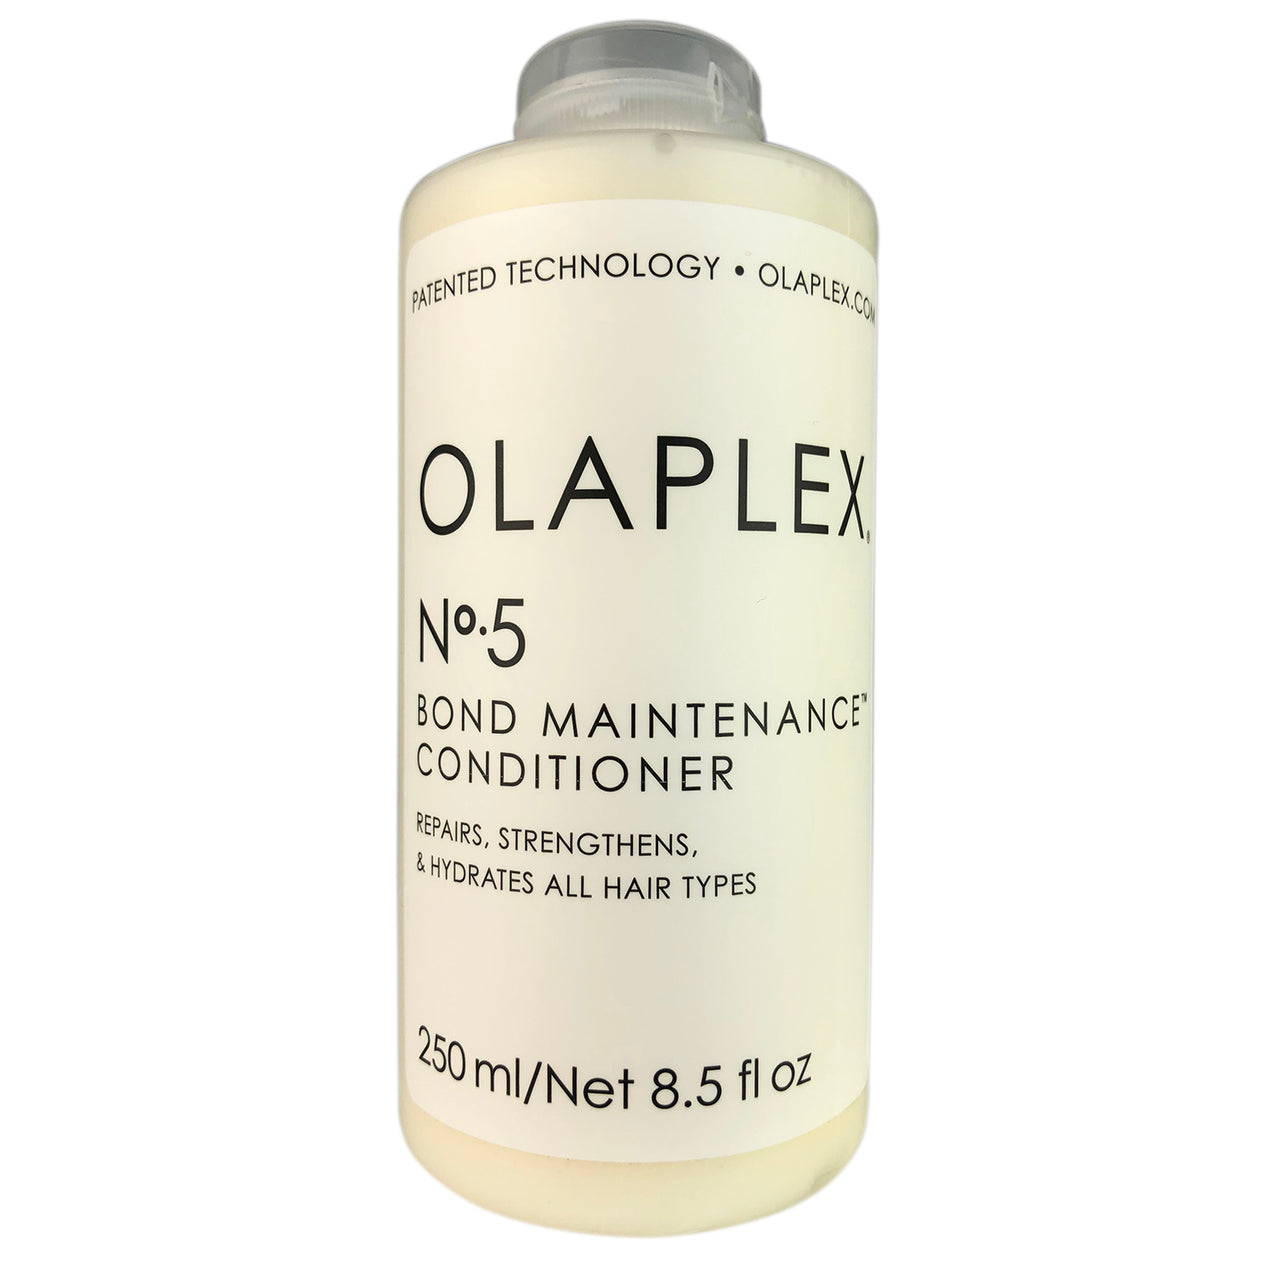 Olaplex No. 5 Bond Maintenance Conditioner 8.5 oz. Made without sulfates, parabens or gluten . Vegan. Color-safe.